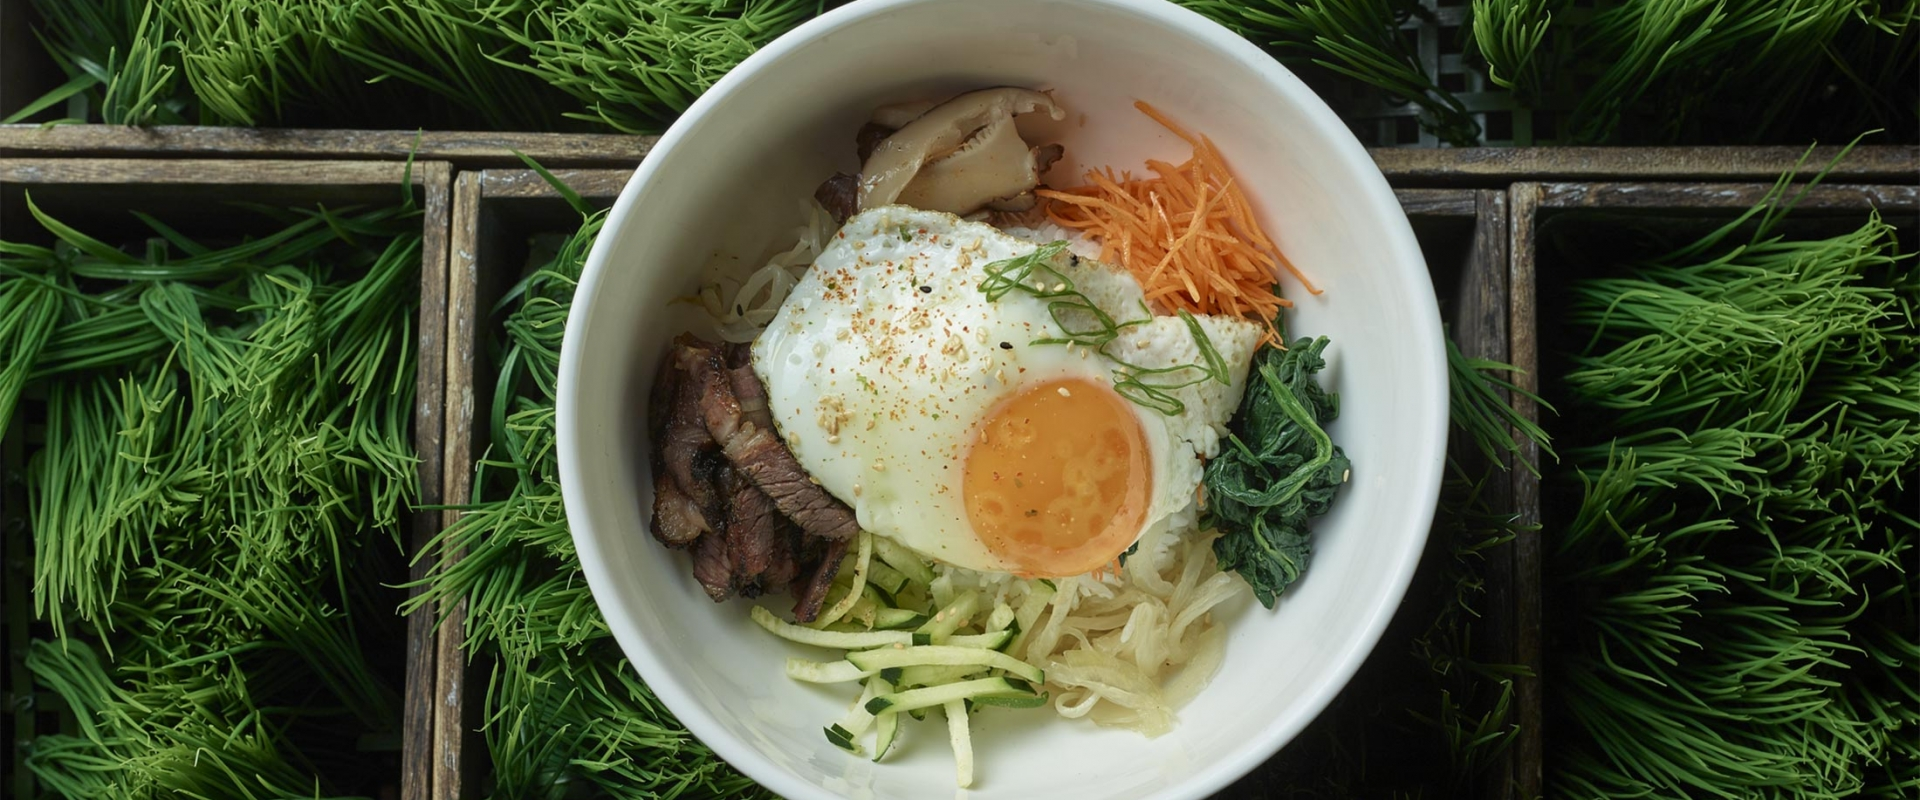 Mouth-watering bibimbap from MRKT East